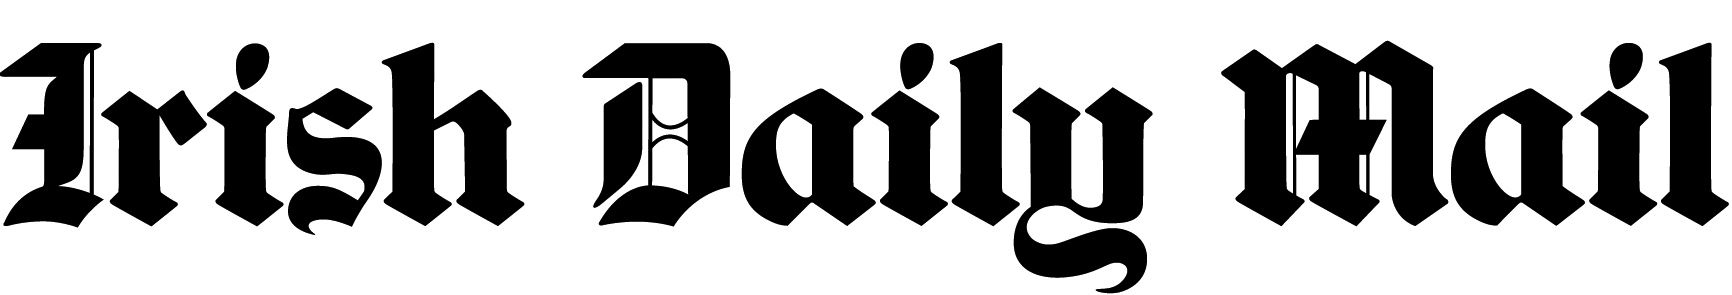 Irish Daily Mail Masthead.jpg